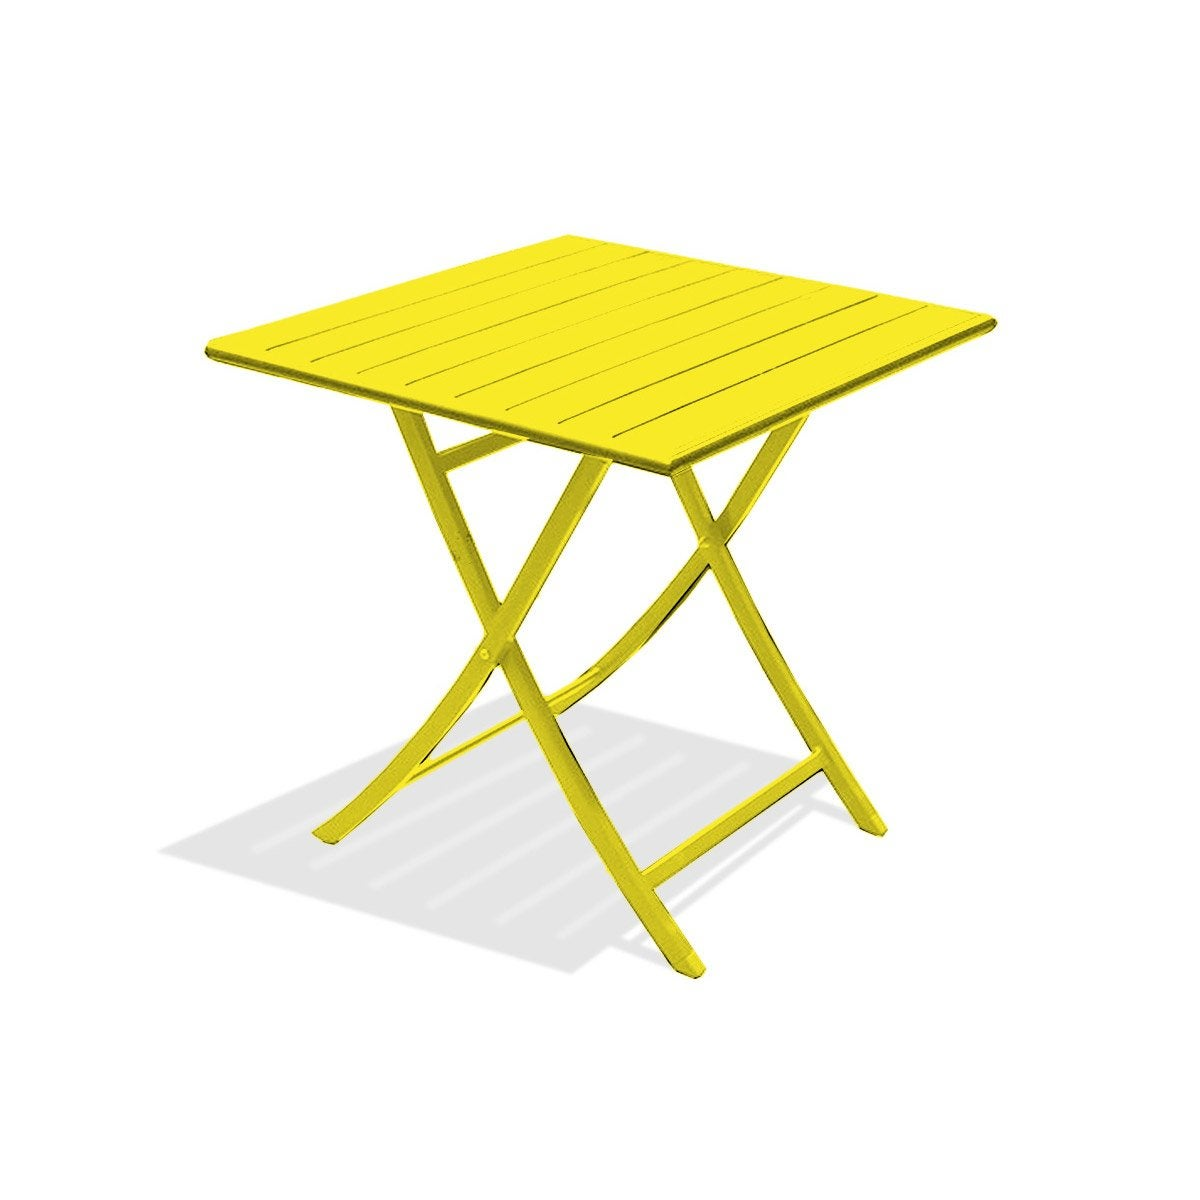 Leroy Merlin Table Jardin Of Table Bois Jardin Leroy Merlin